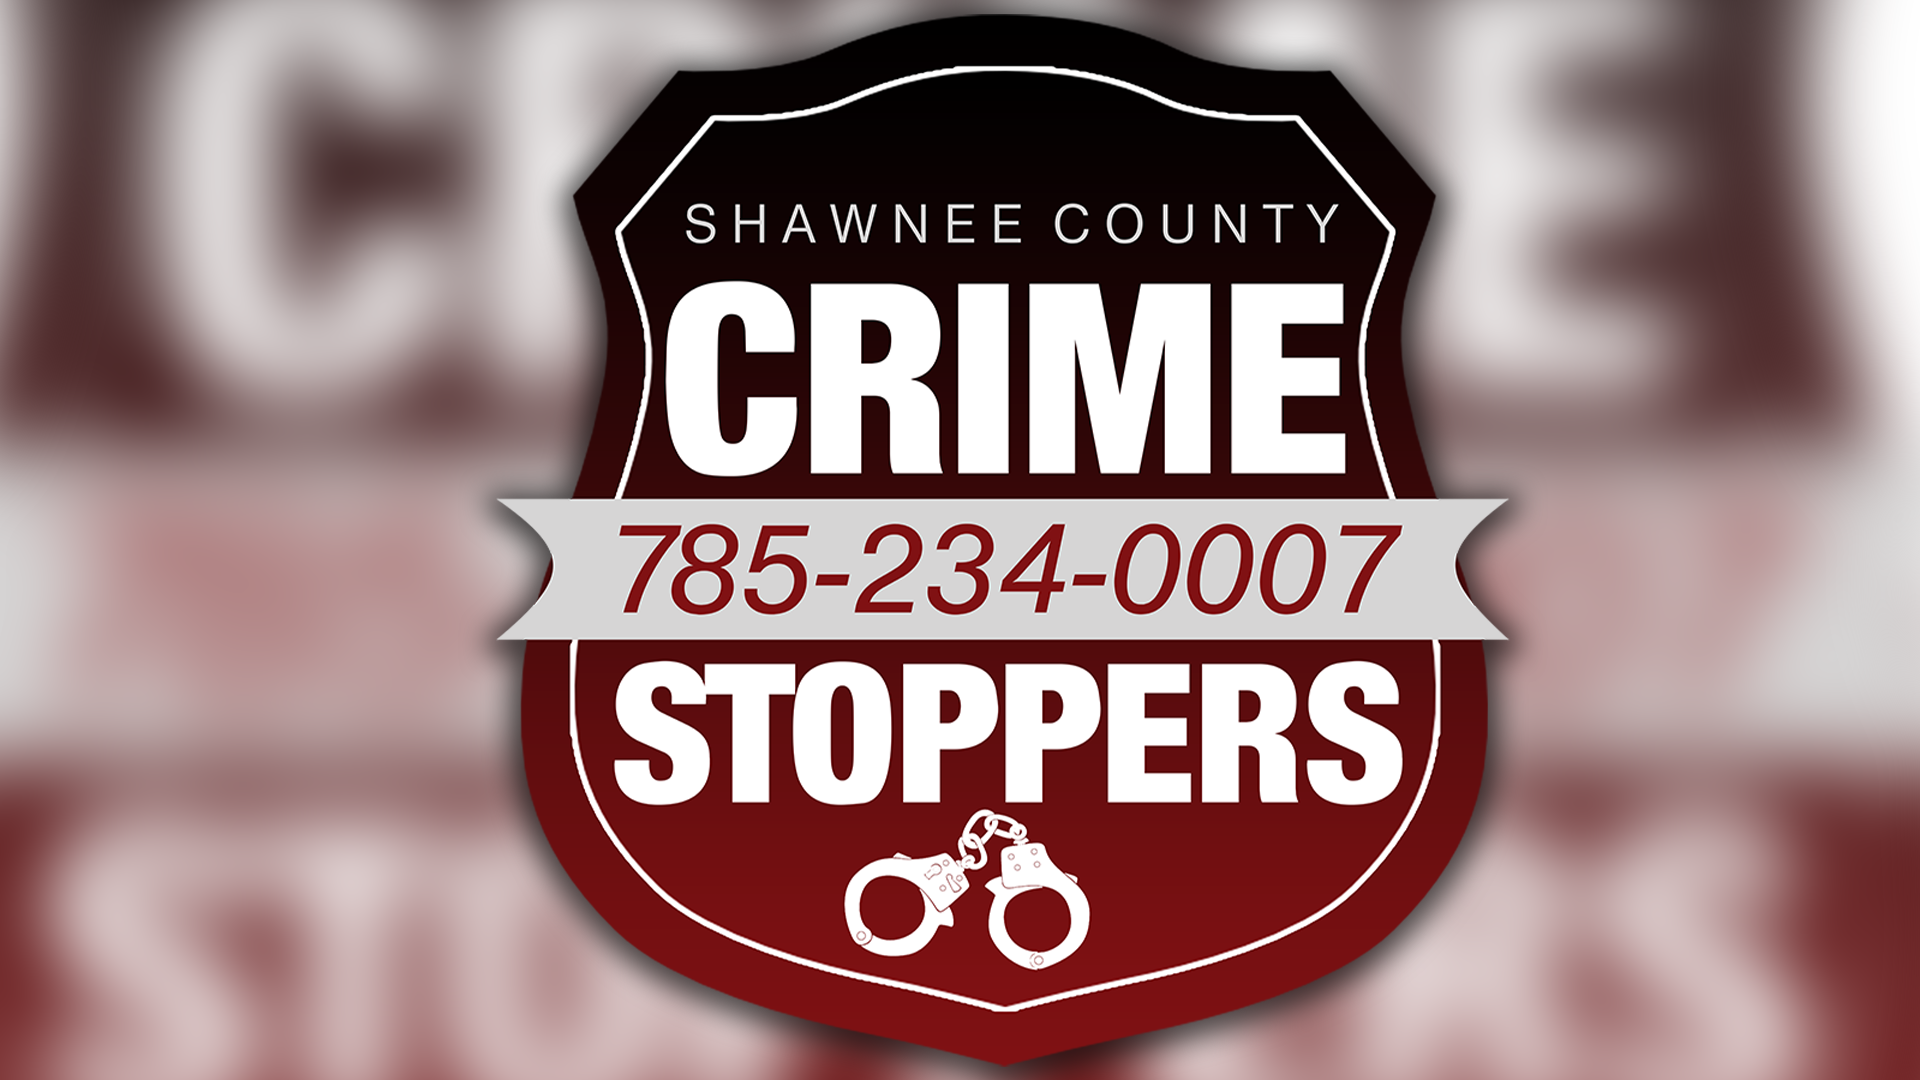 new crime stoppers logo_1546551972773.png.jpg